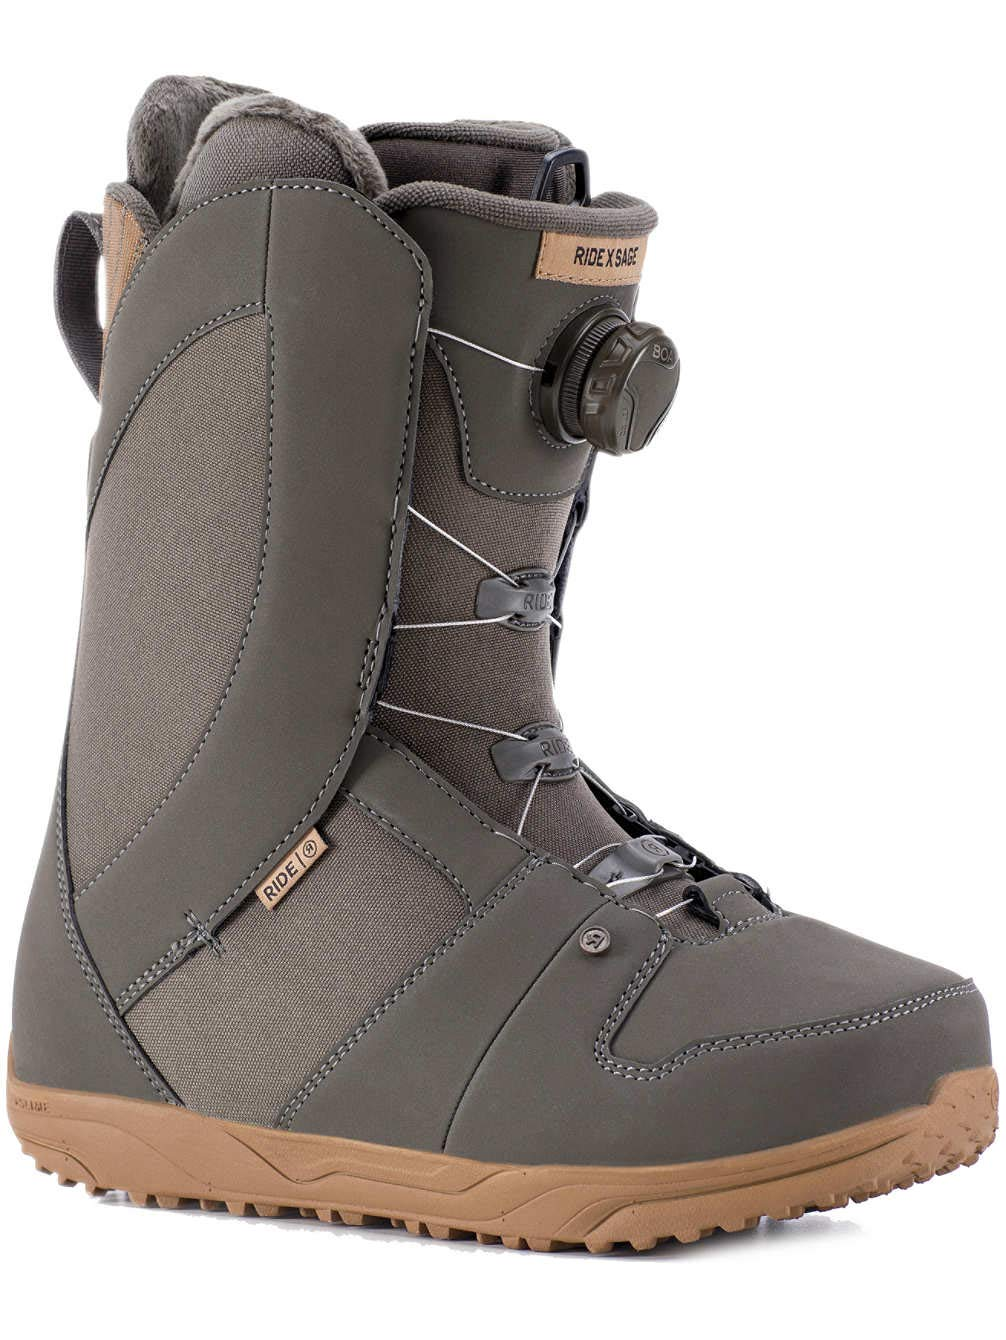 Ride Sage Boa Coiler Womens Snowboard Boots 2019-8.5/Taupe by Ride